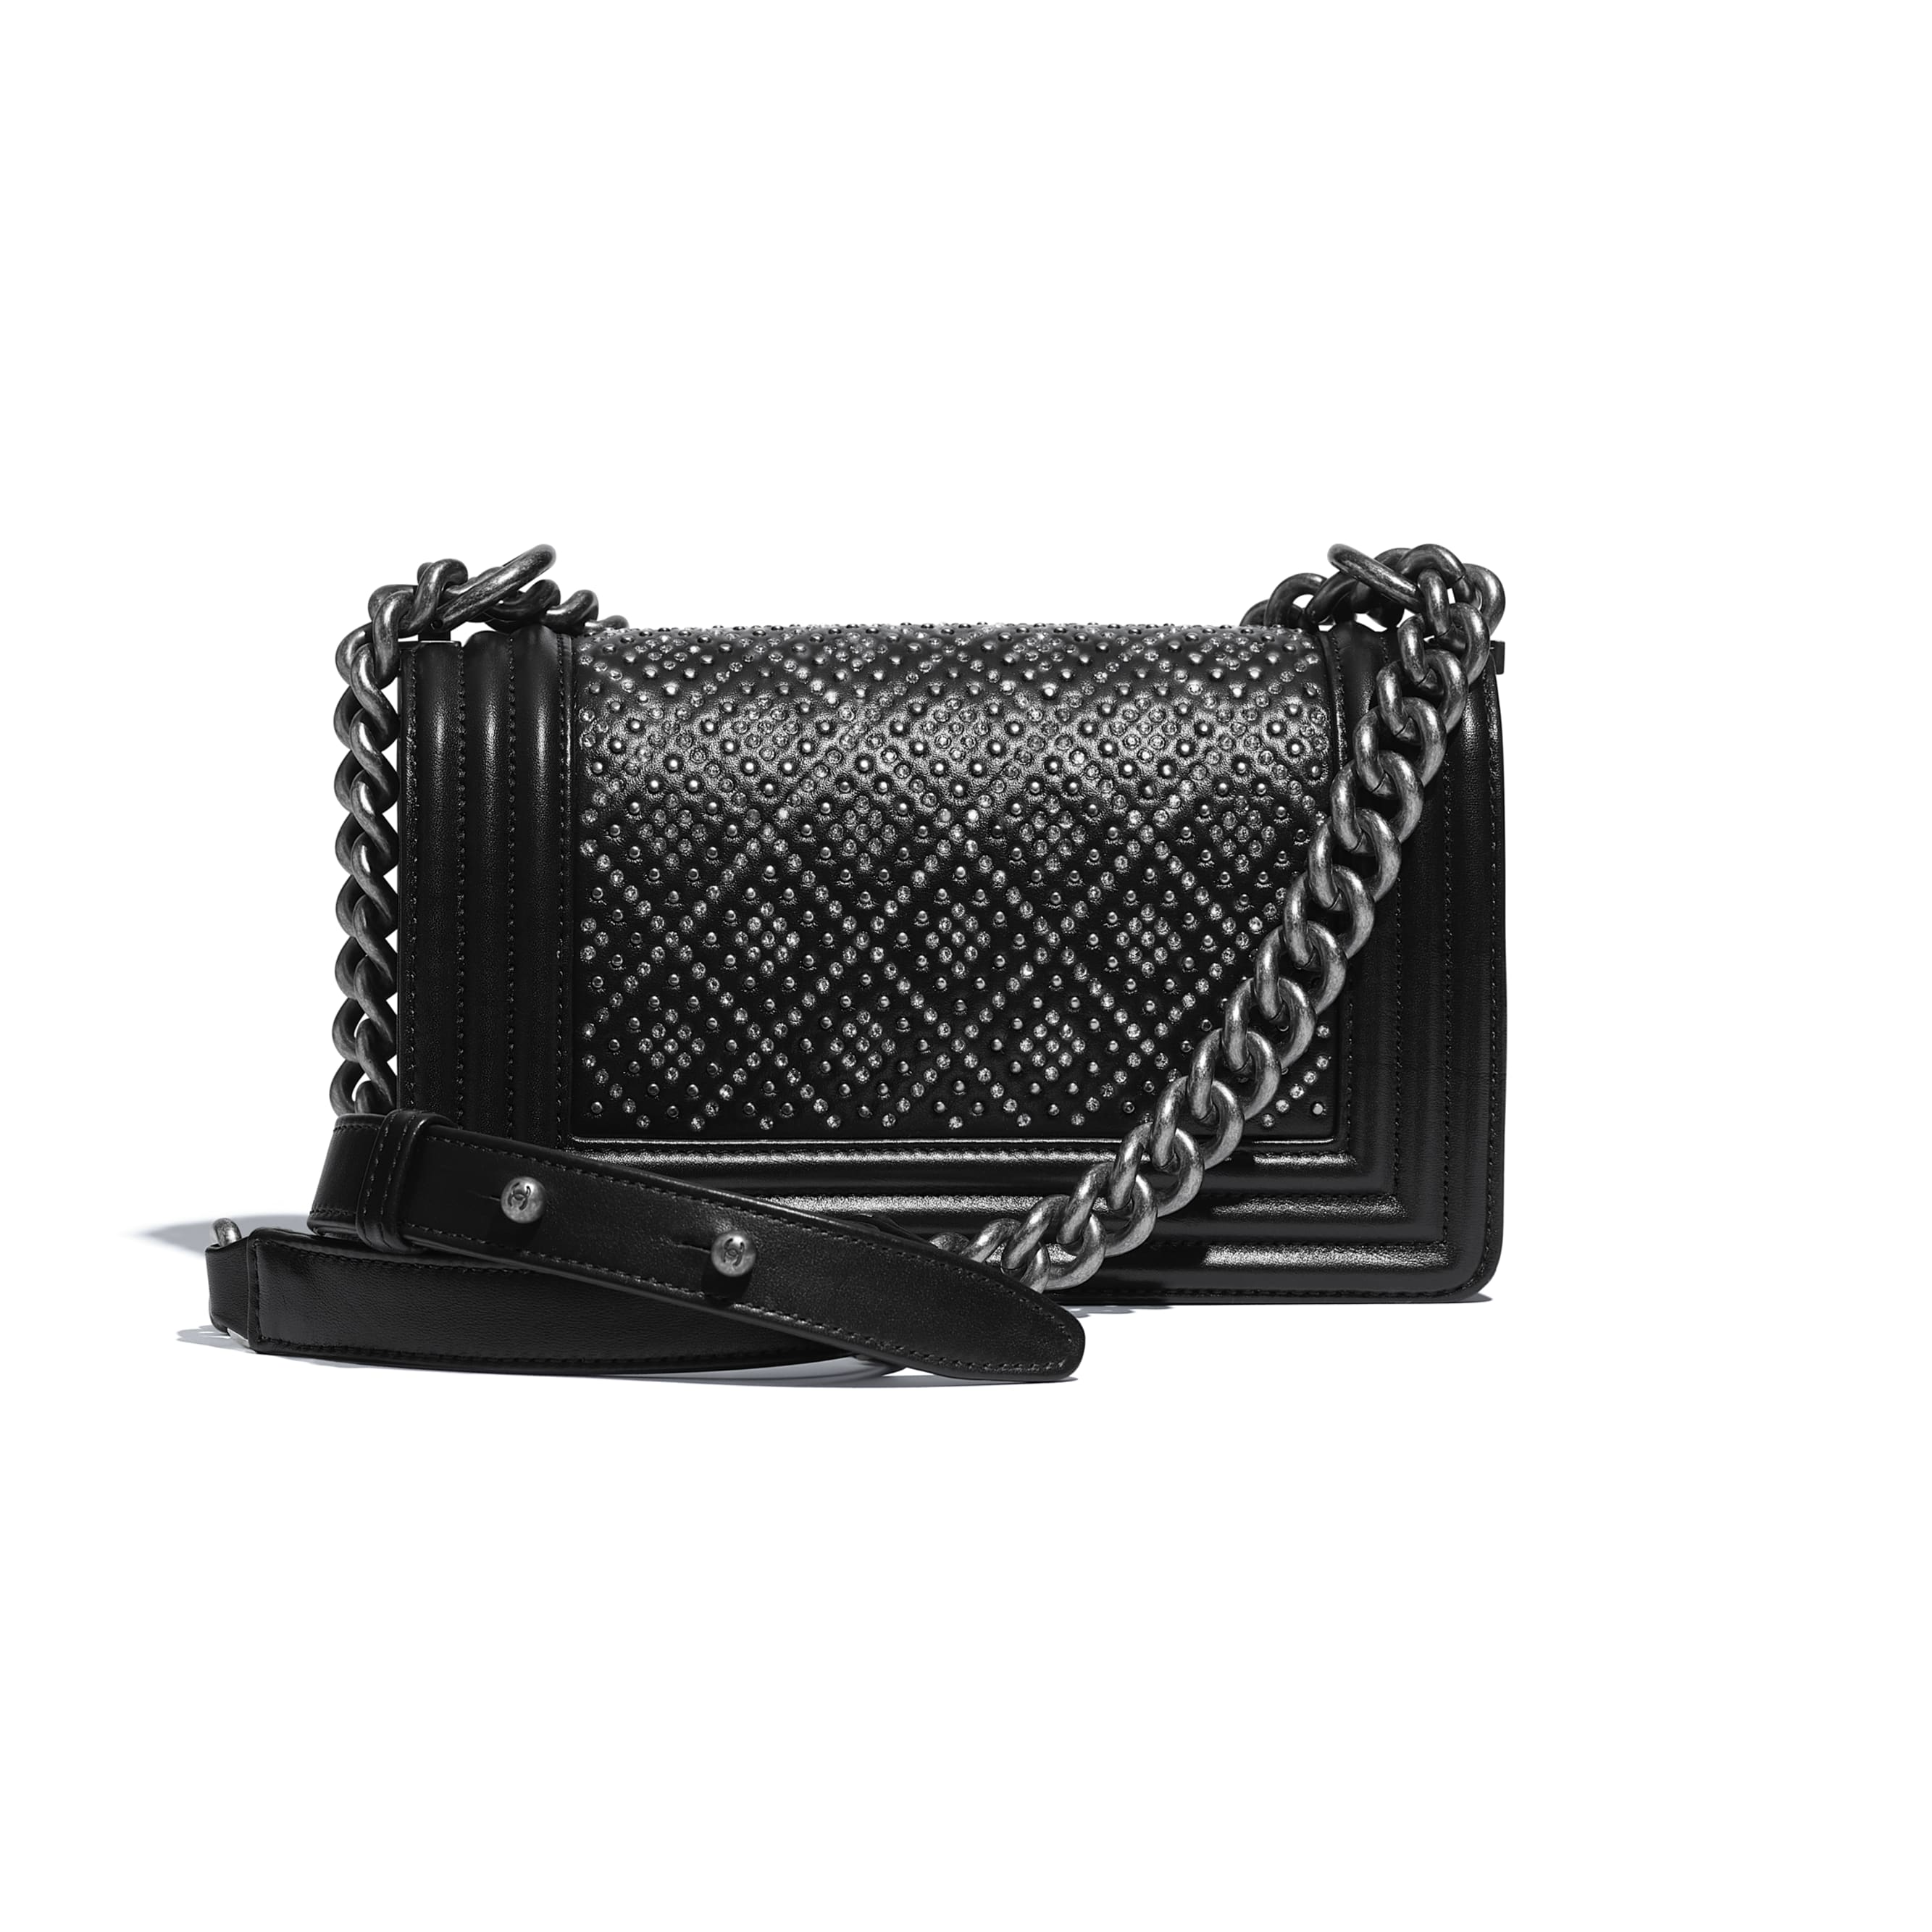 Small BOY CHANEL Handbag - Black - Calfskin, Studs, Diamanté & Ruthenium-Finish Metal - CHANEL - Alternative view - see standard sized version